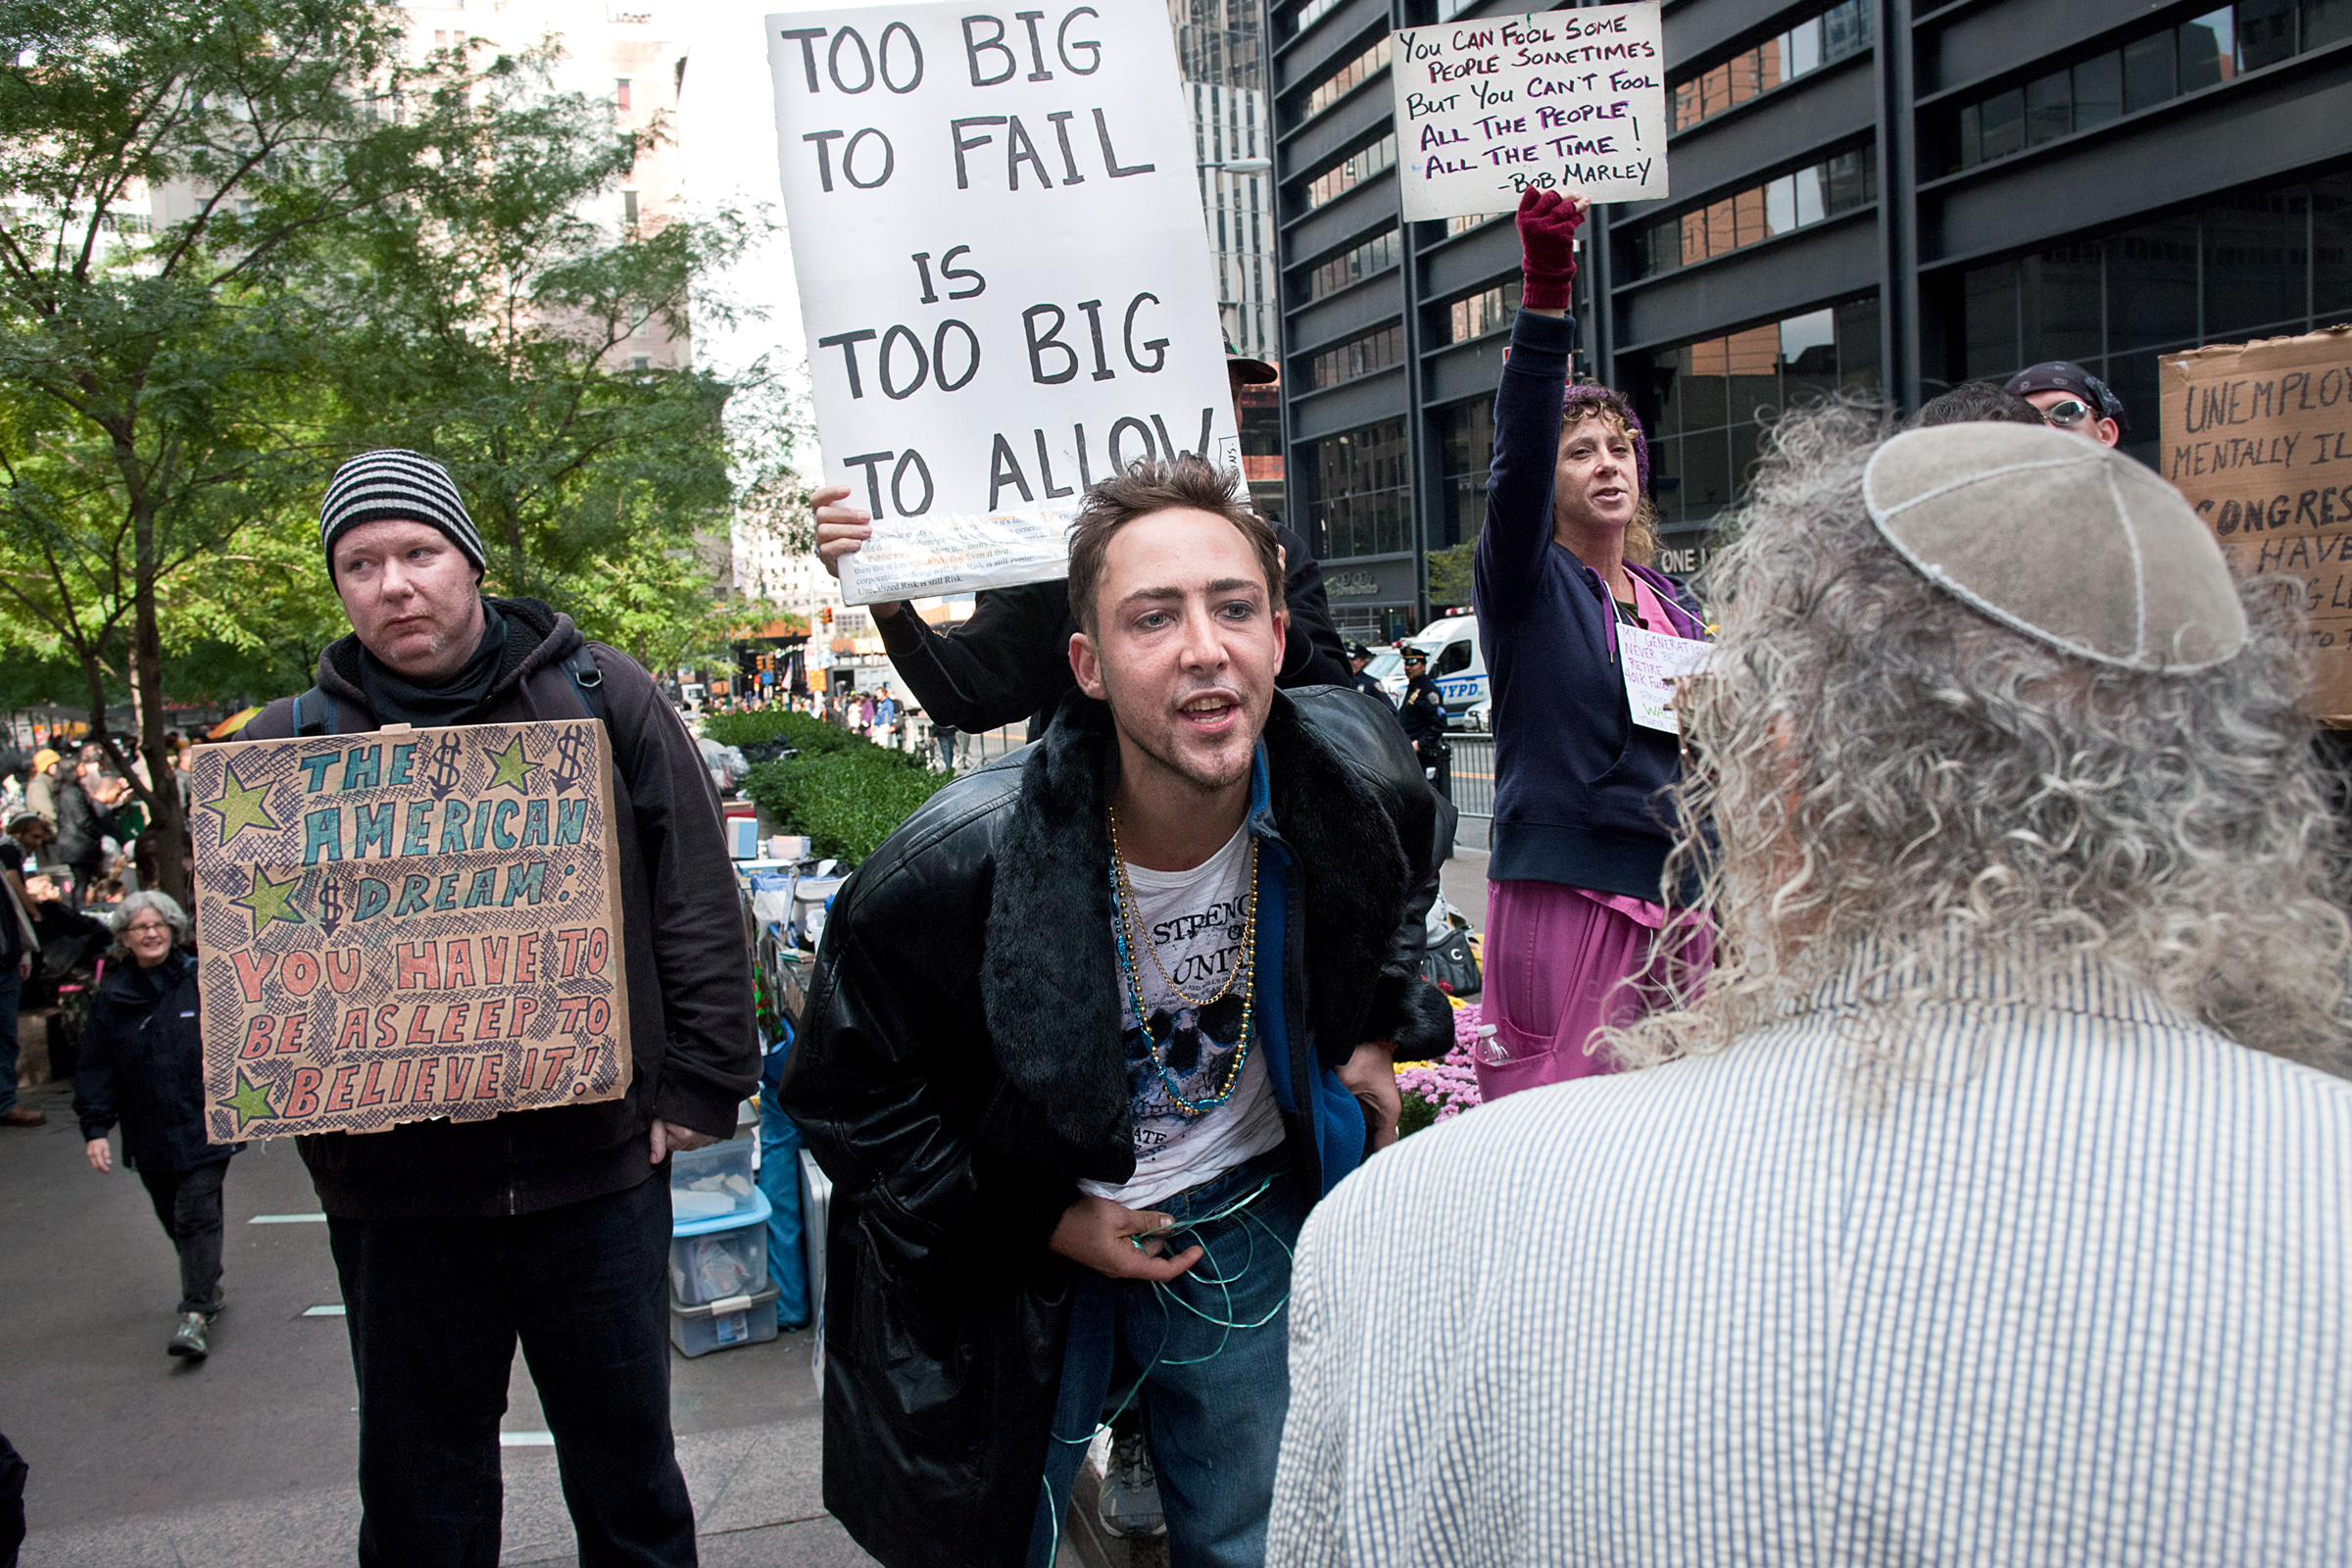 Protester Danny Cline contests a Jewish passerby who questioned the politics of Occupy Wall Street.